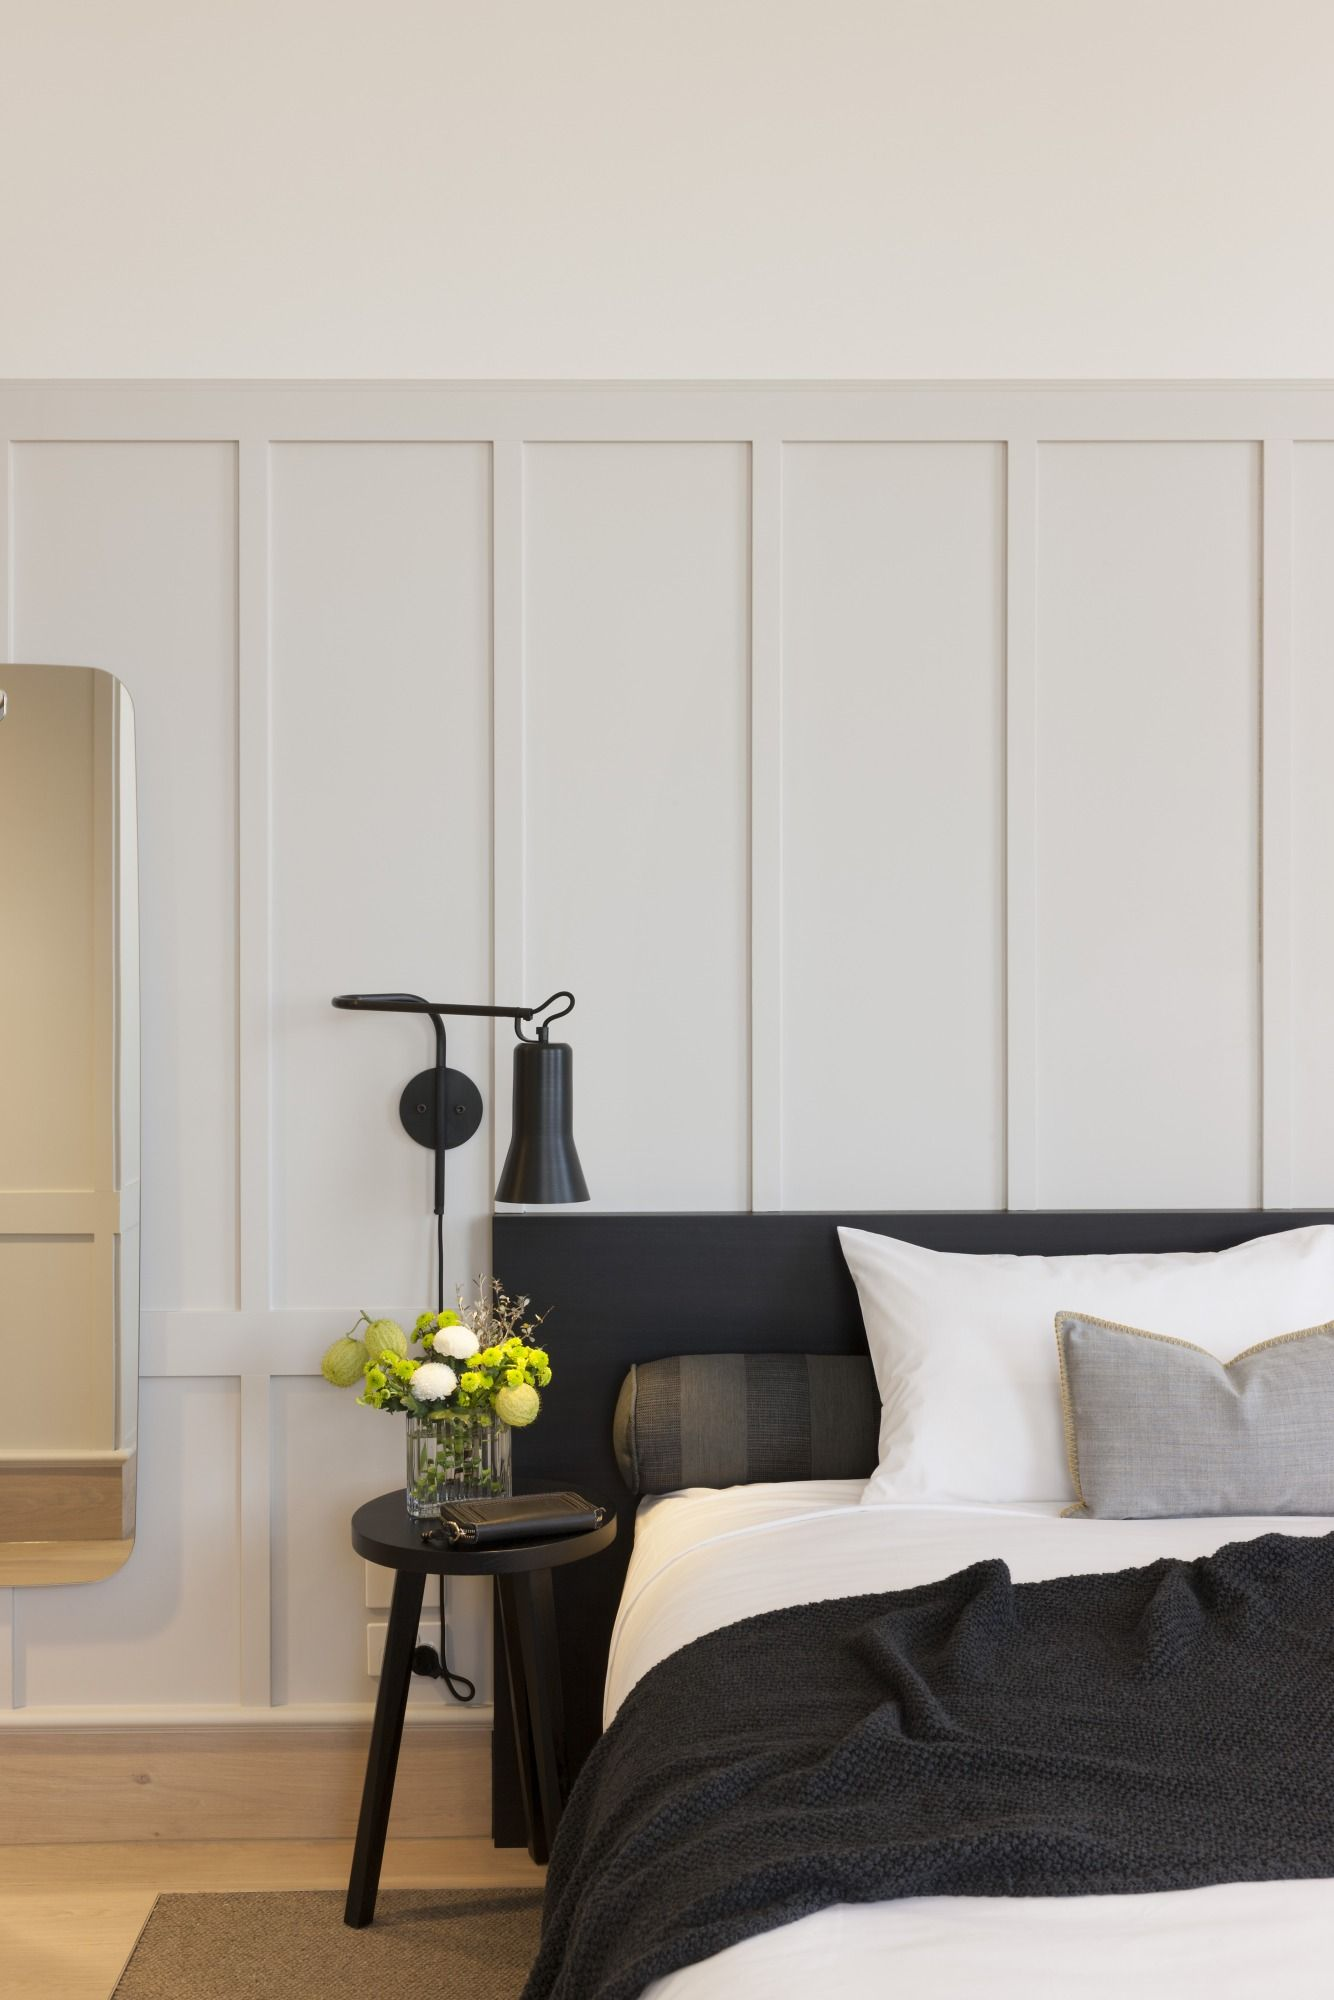 The coppersmith hotel by hassell bedroom pinned onto for Hotel home decor